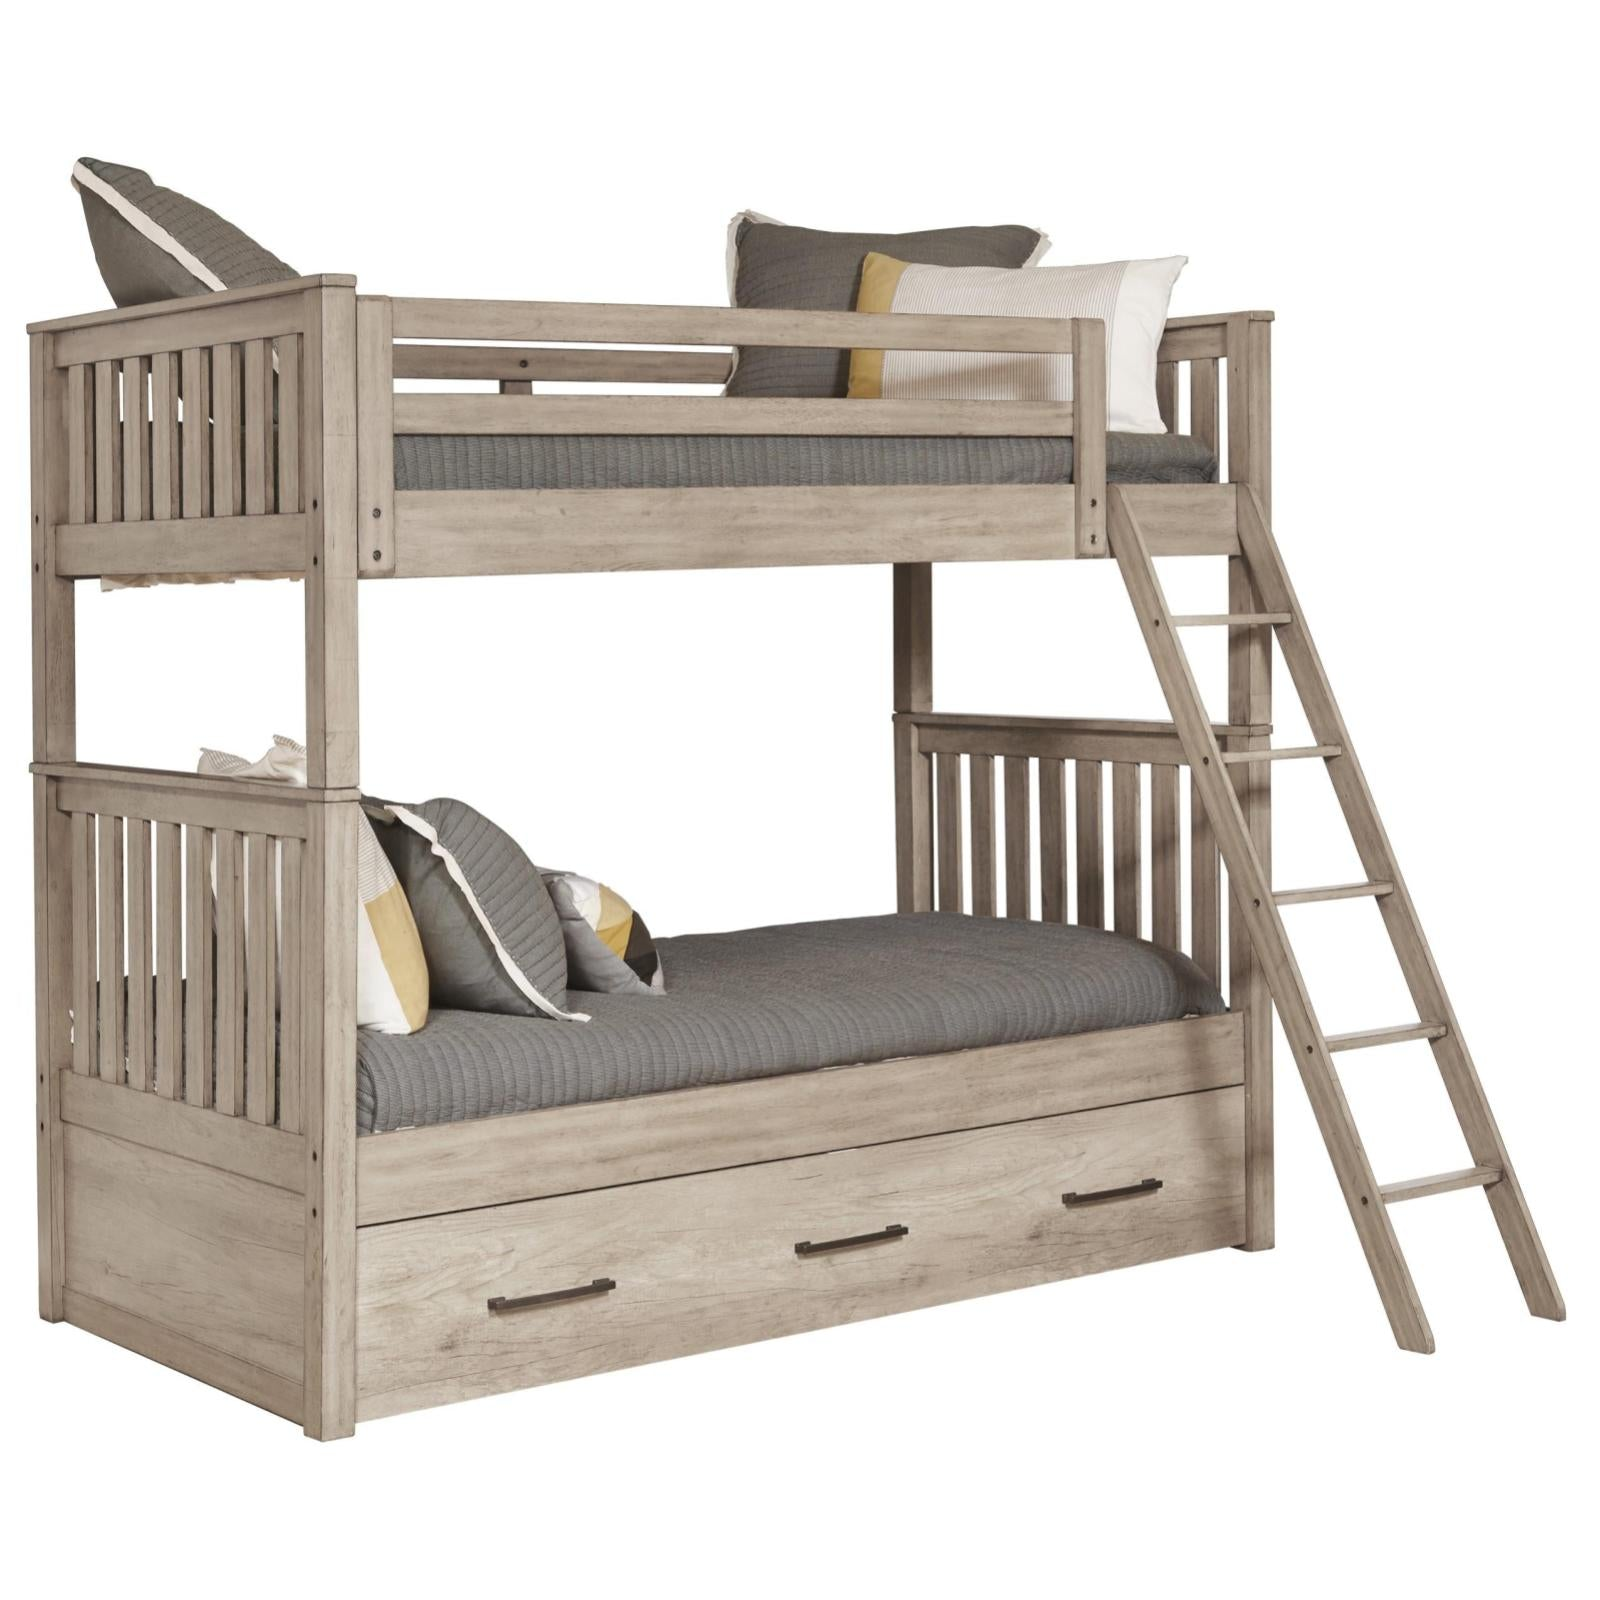 Terrific River Creek Bunk Bed Gmtry Best Dining Table And Chair Ideas Images Gmtryco